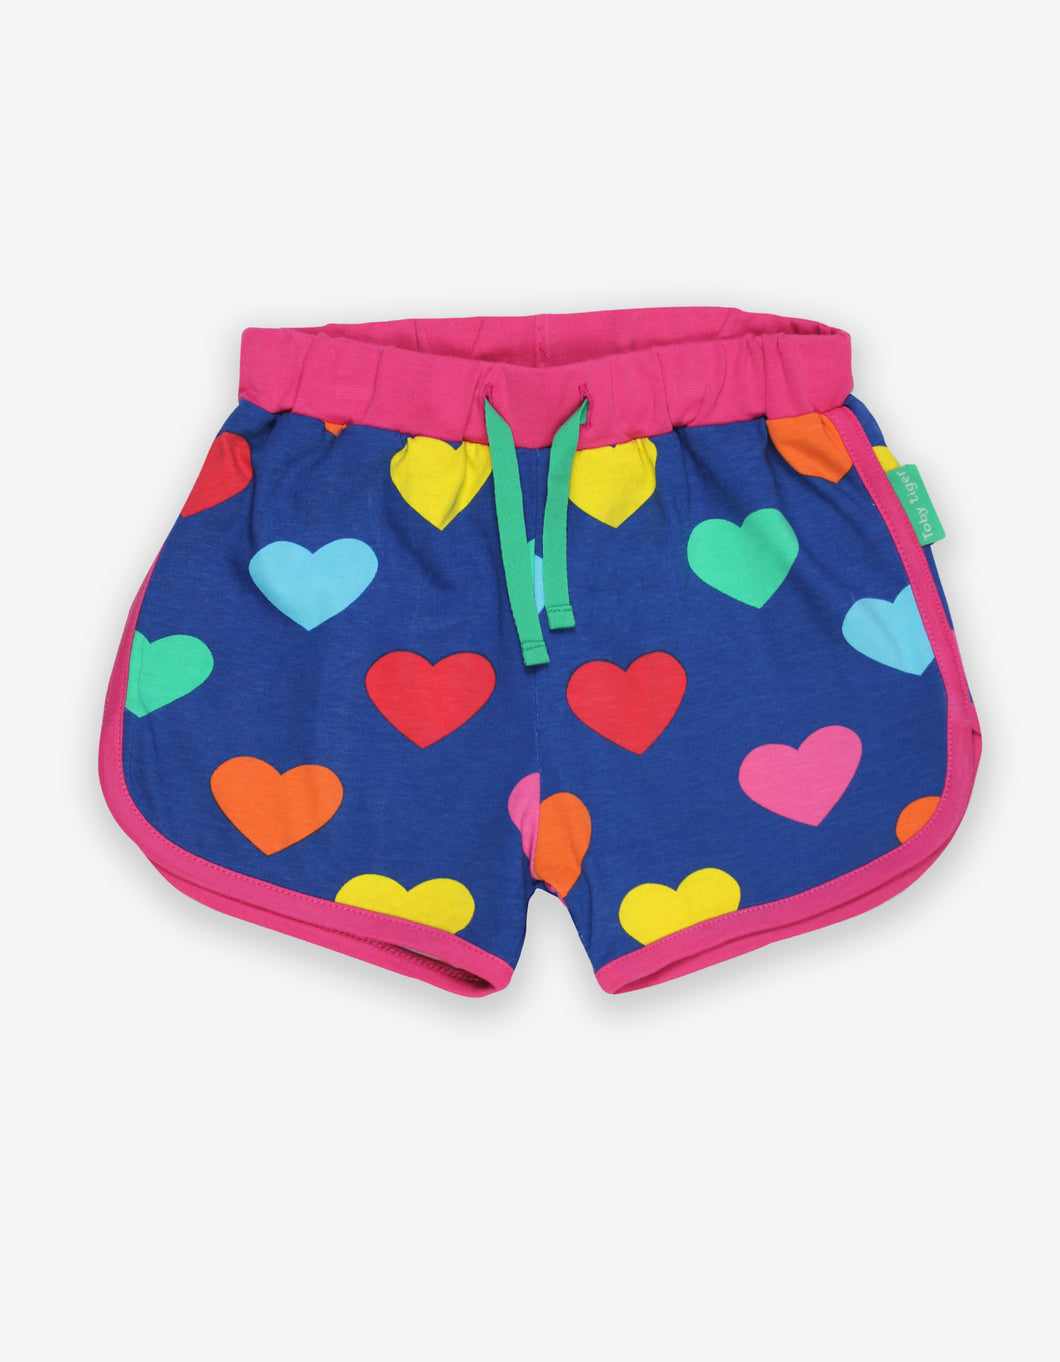 Organic Multi Heart Print Running Shorts